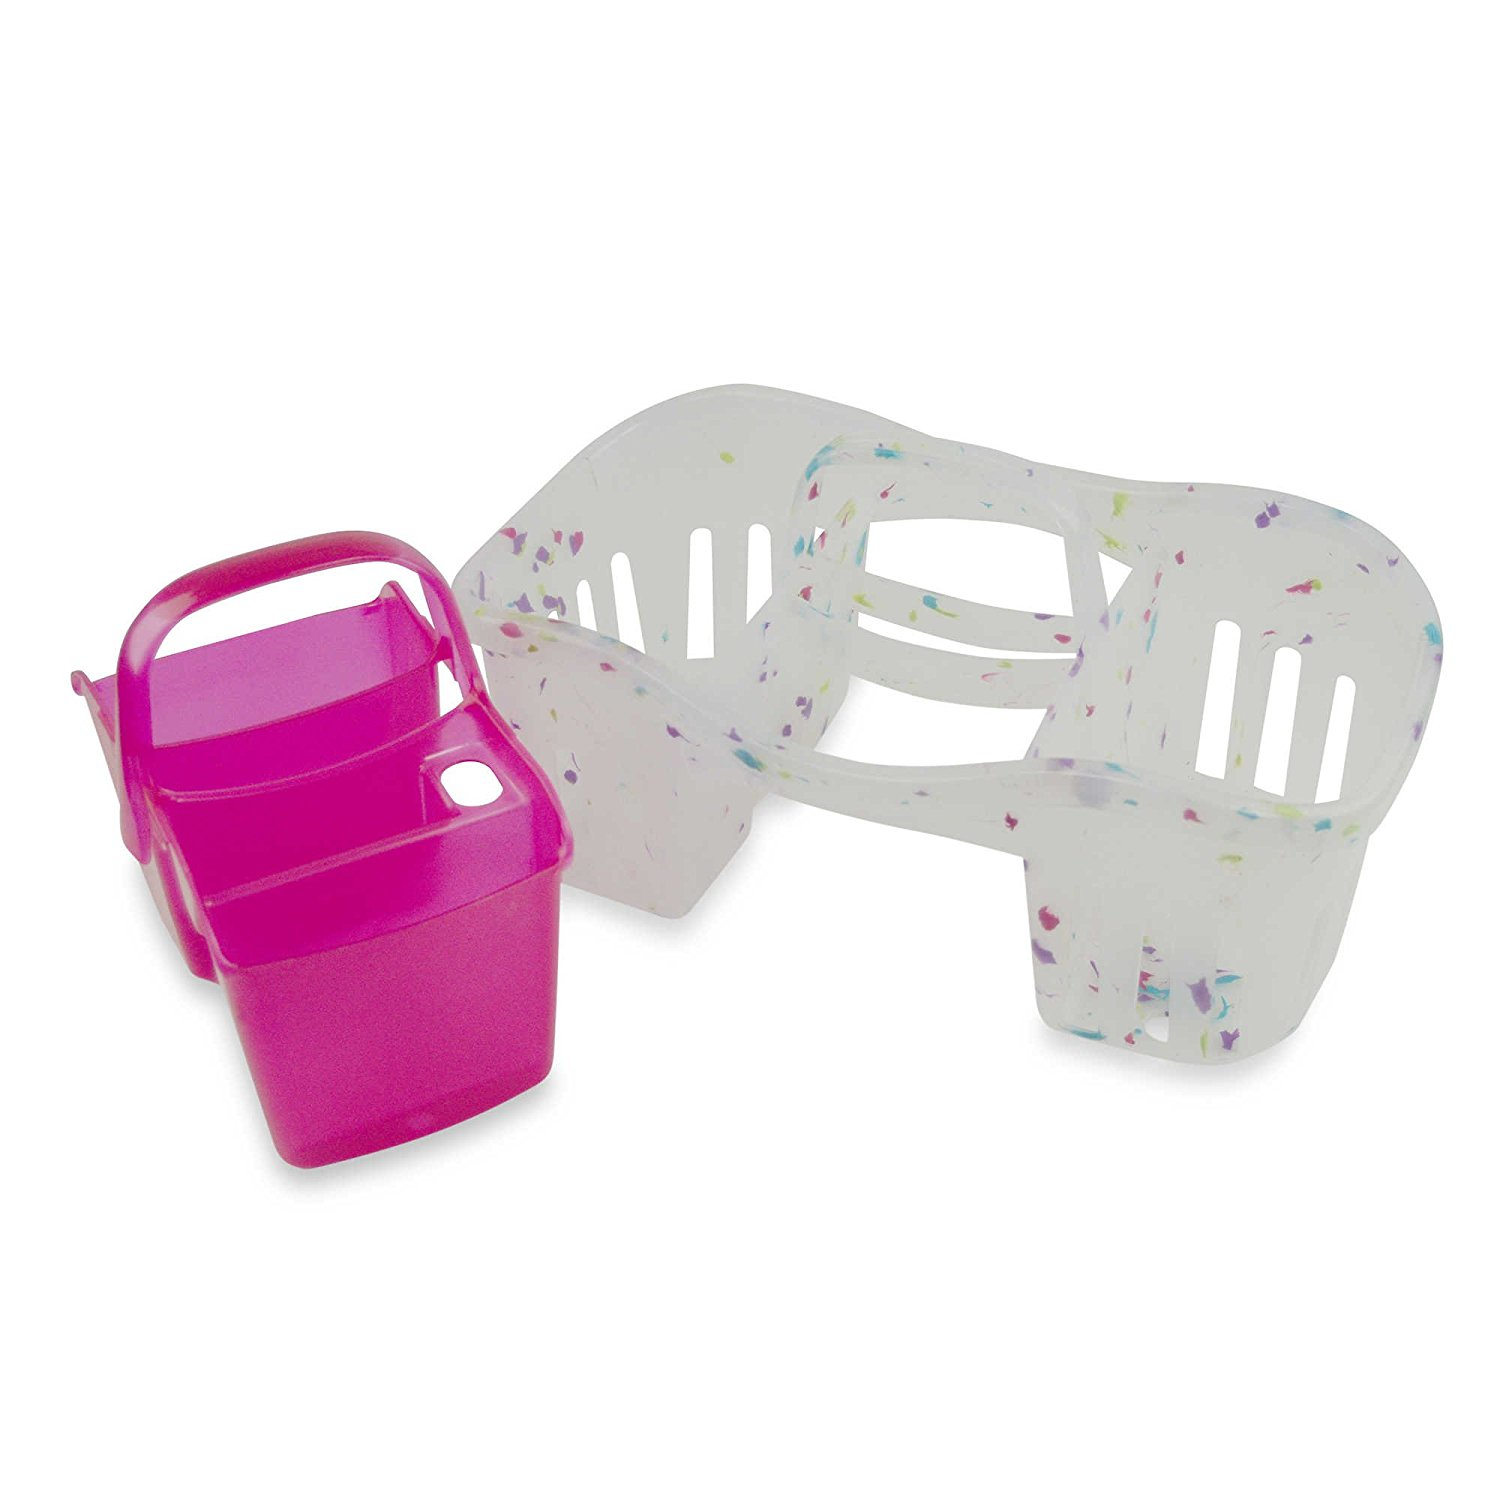 2-in-1 Interlocking Handy Shower Caddy features Removable Mini-Caddy ...